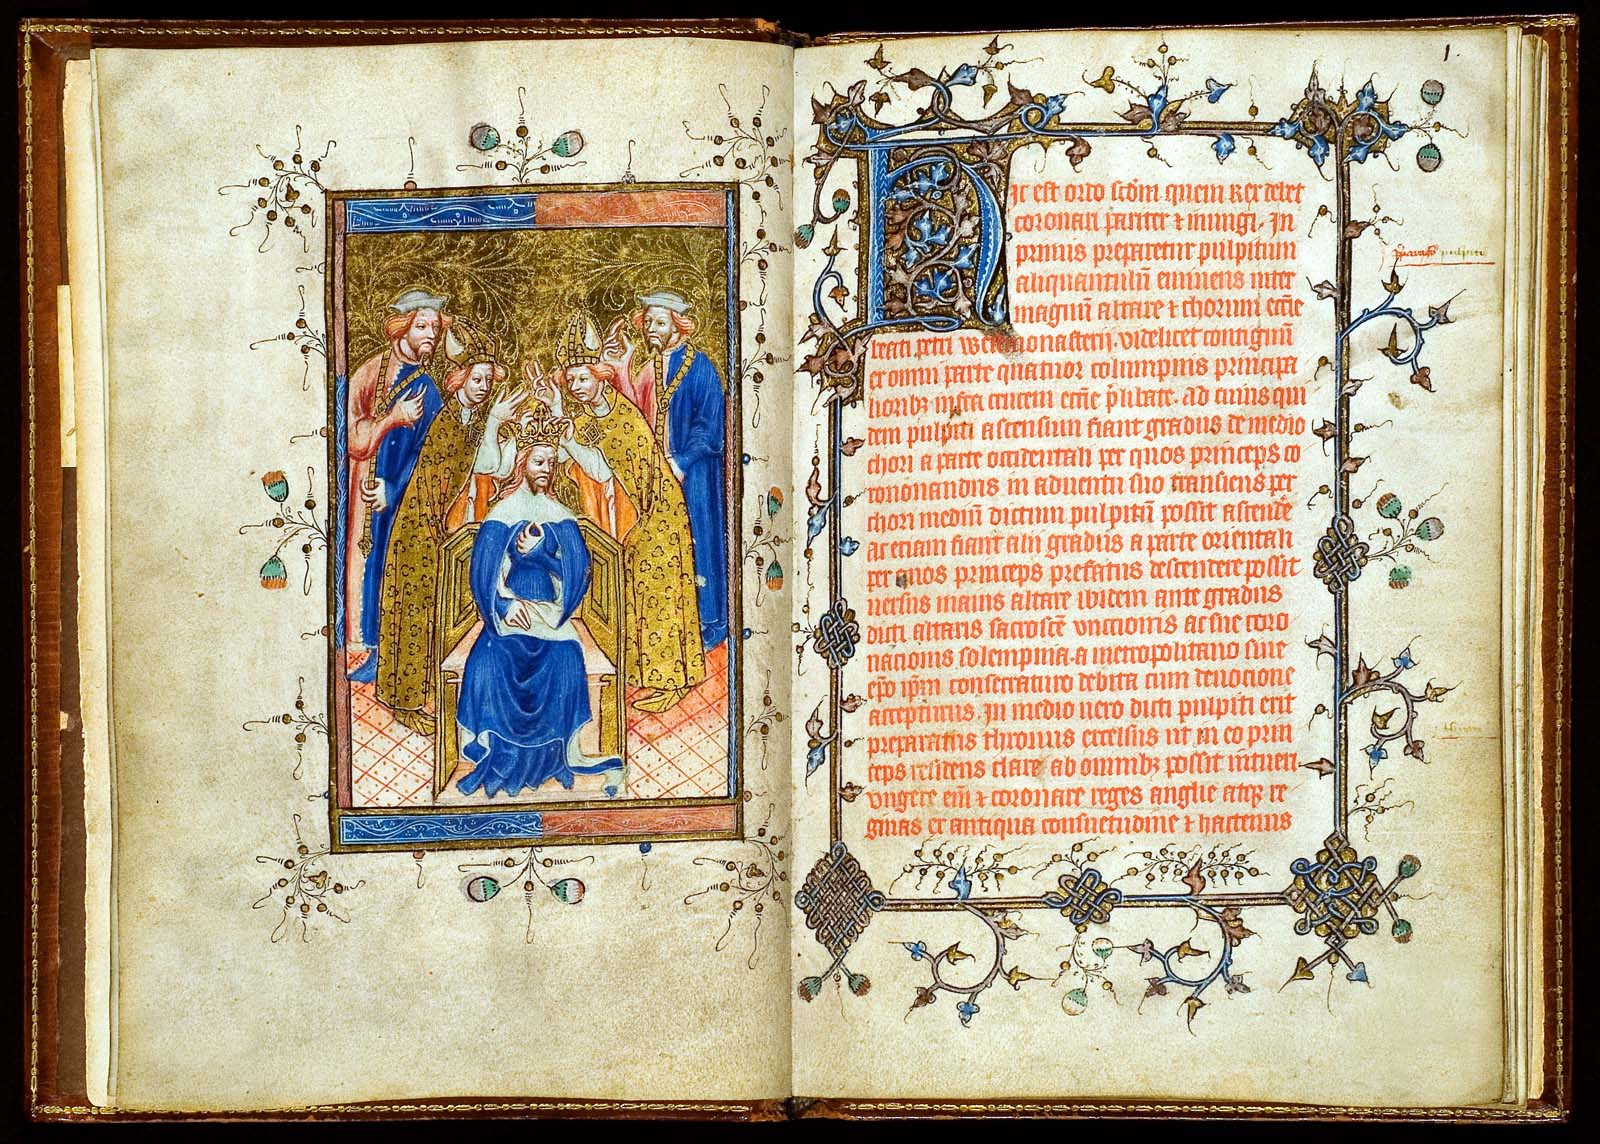 open illuminated manuscript page with illustration and text